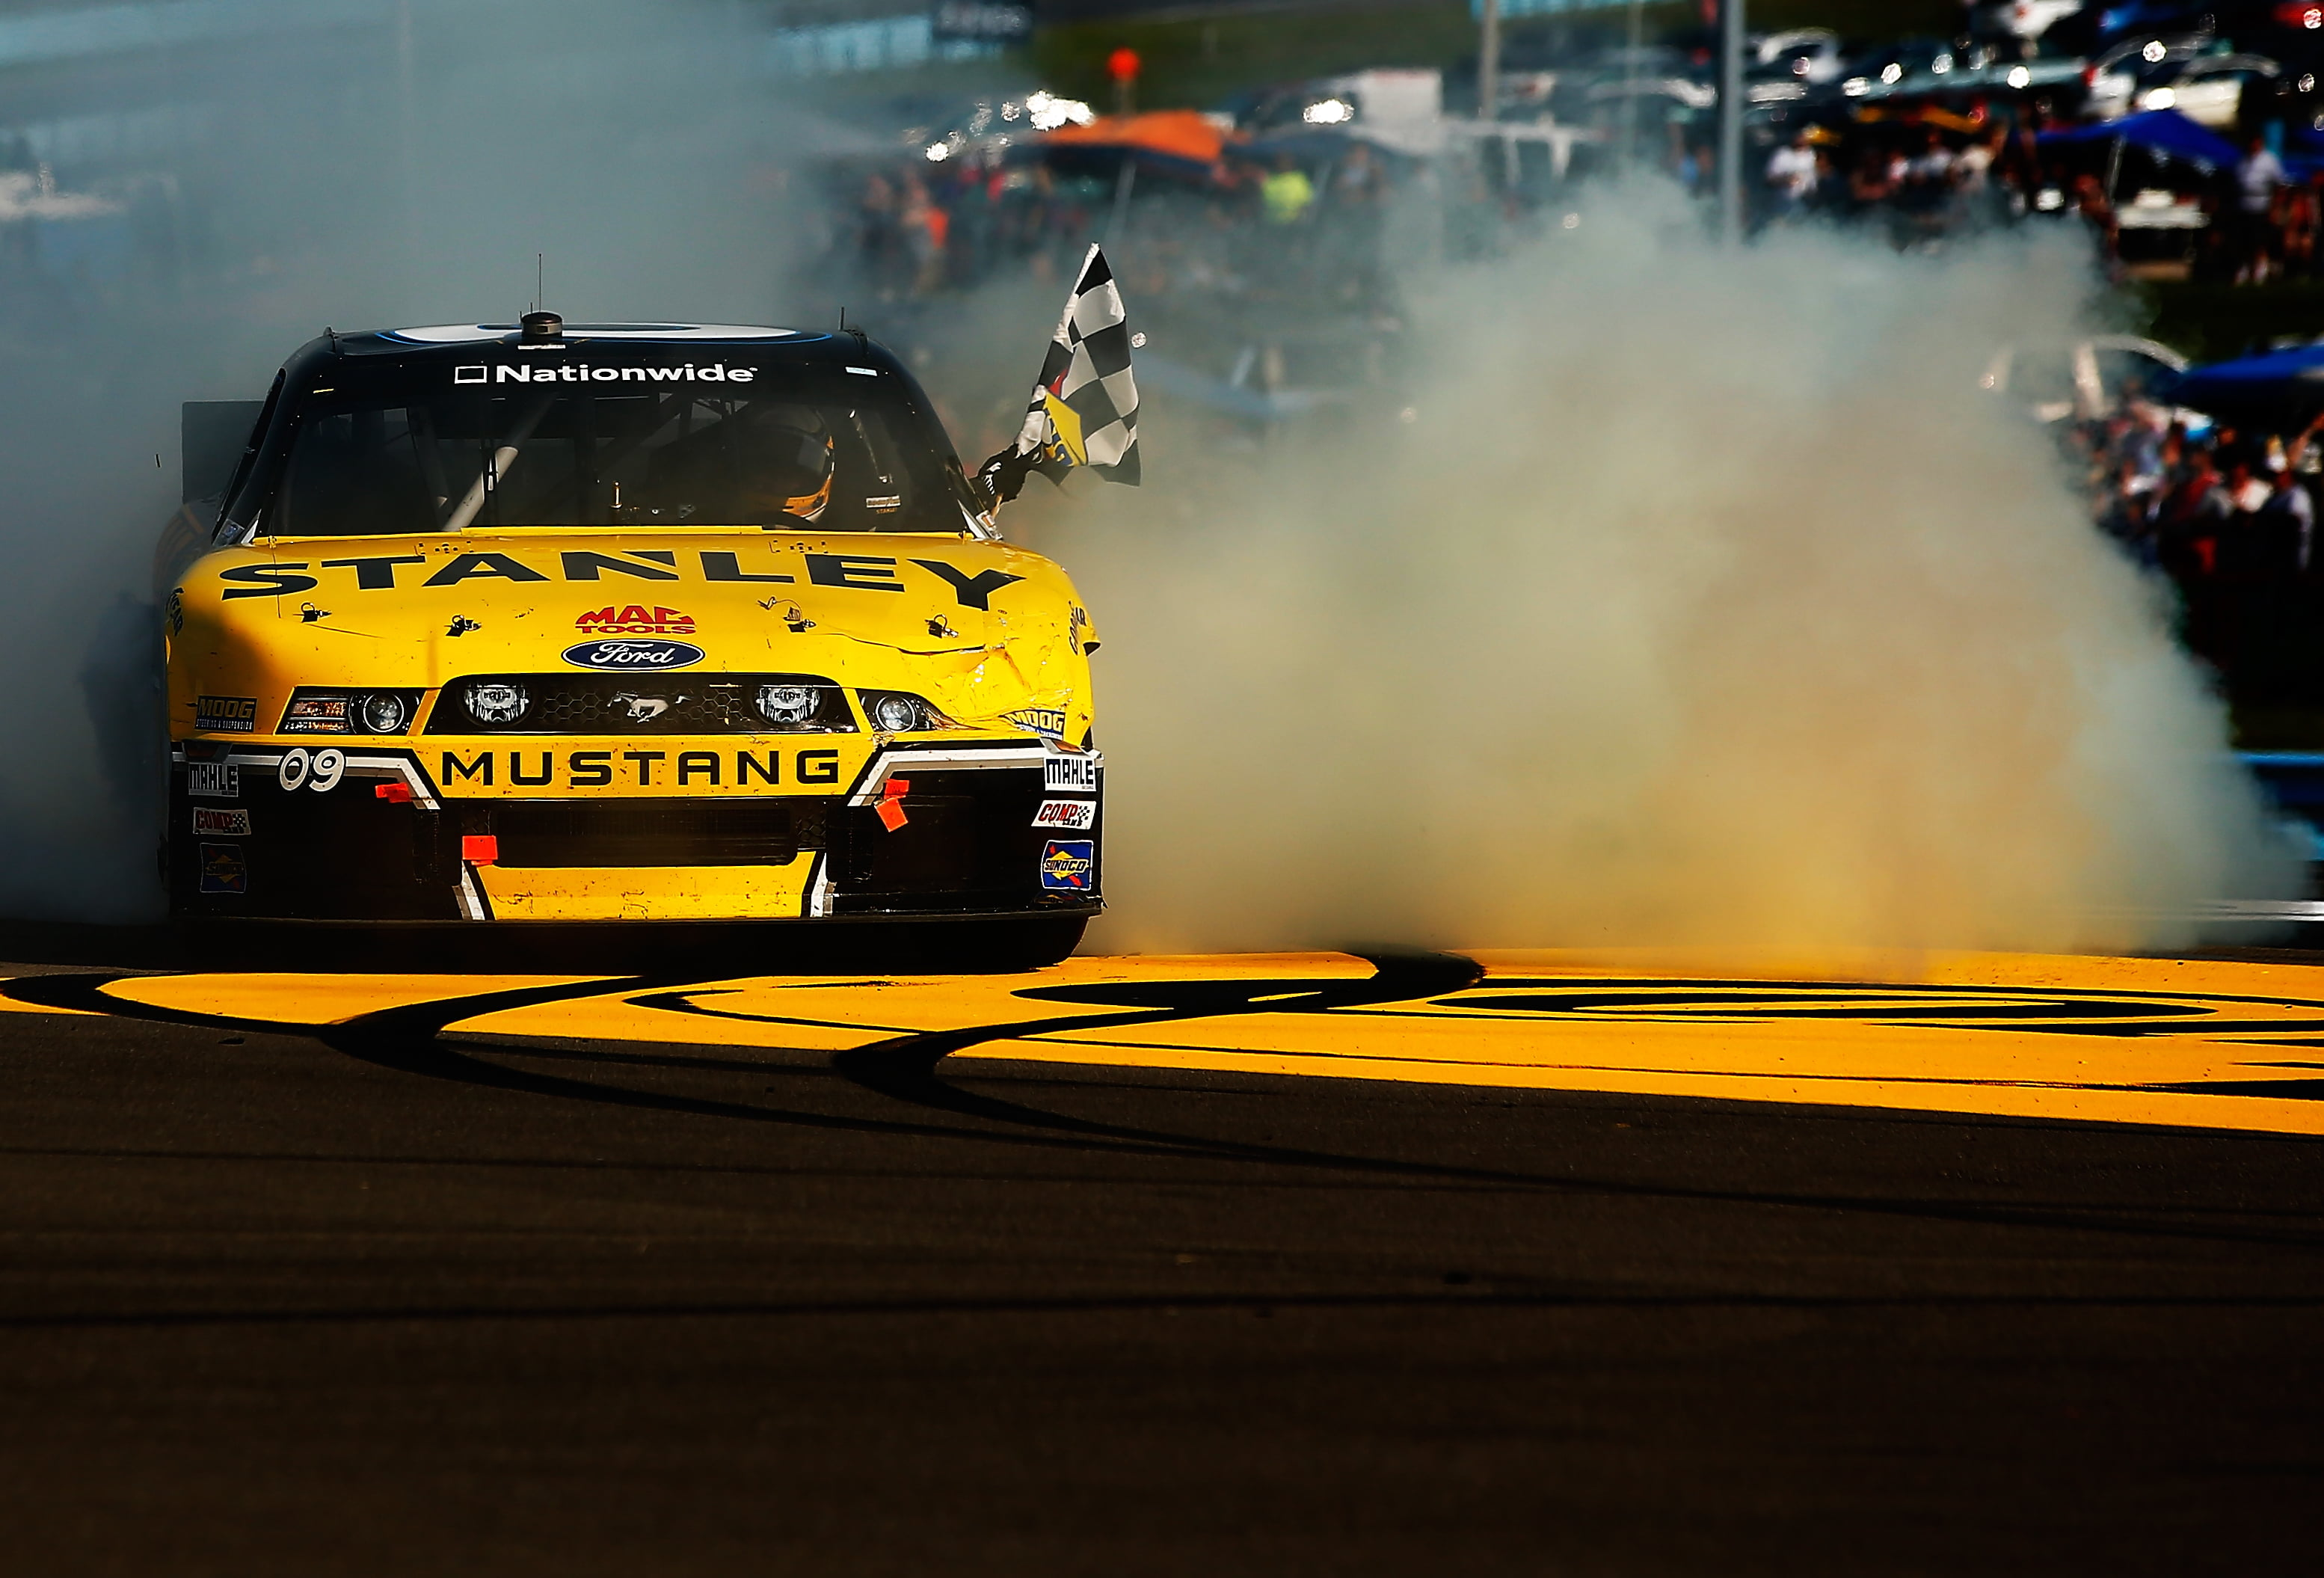 Marcos Ambrose holds on to win Nationwide Race at Watkins Glen